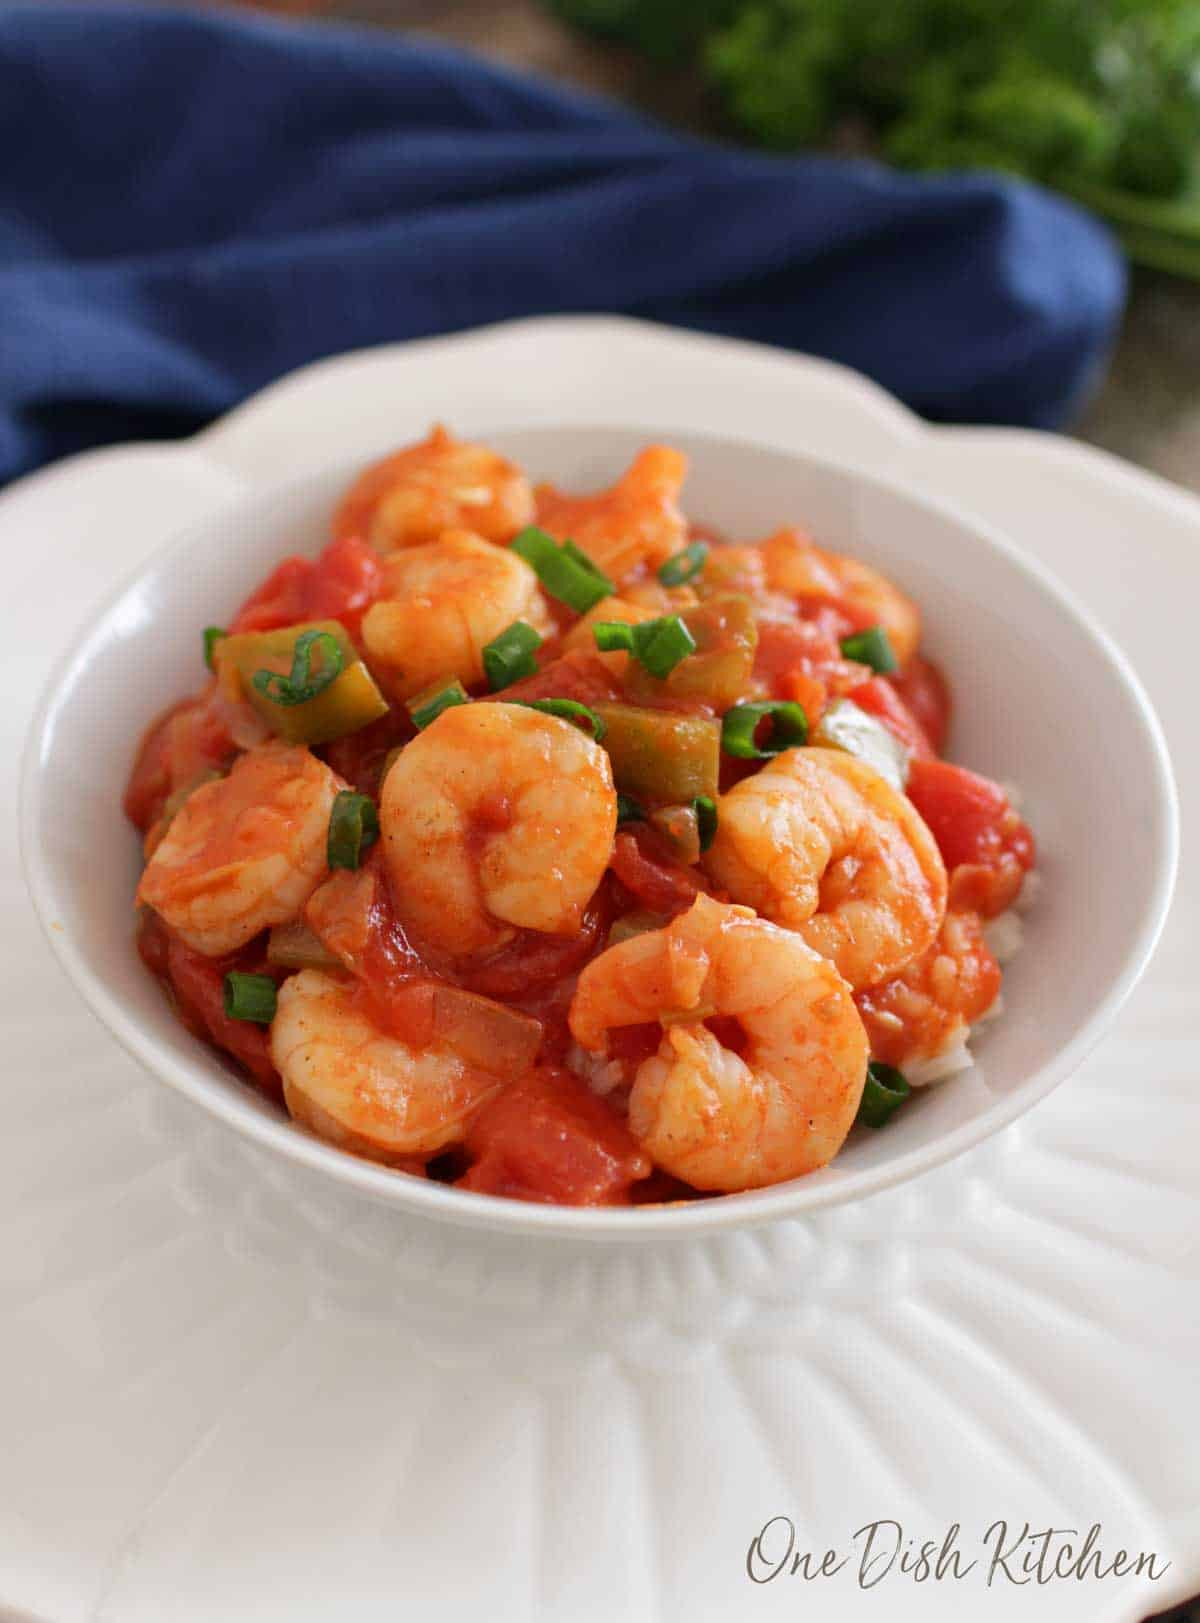 A bowl of shrimp creole over white rice